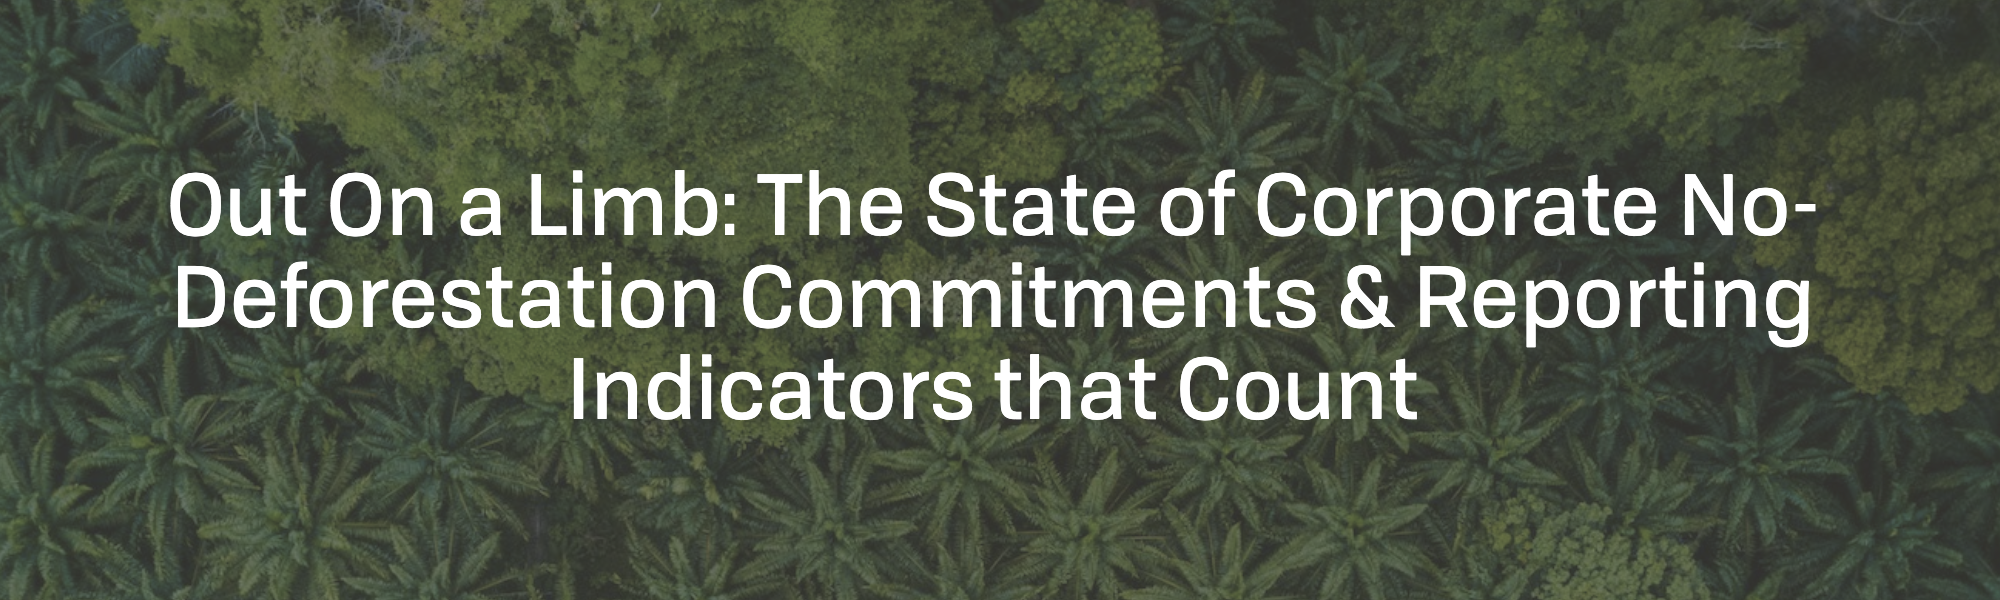 Out on a Limb: The State of Corporate No-Deforestation Commitments